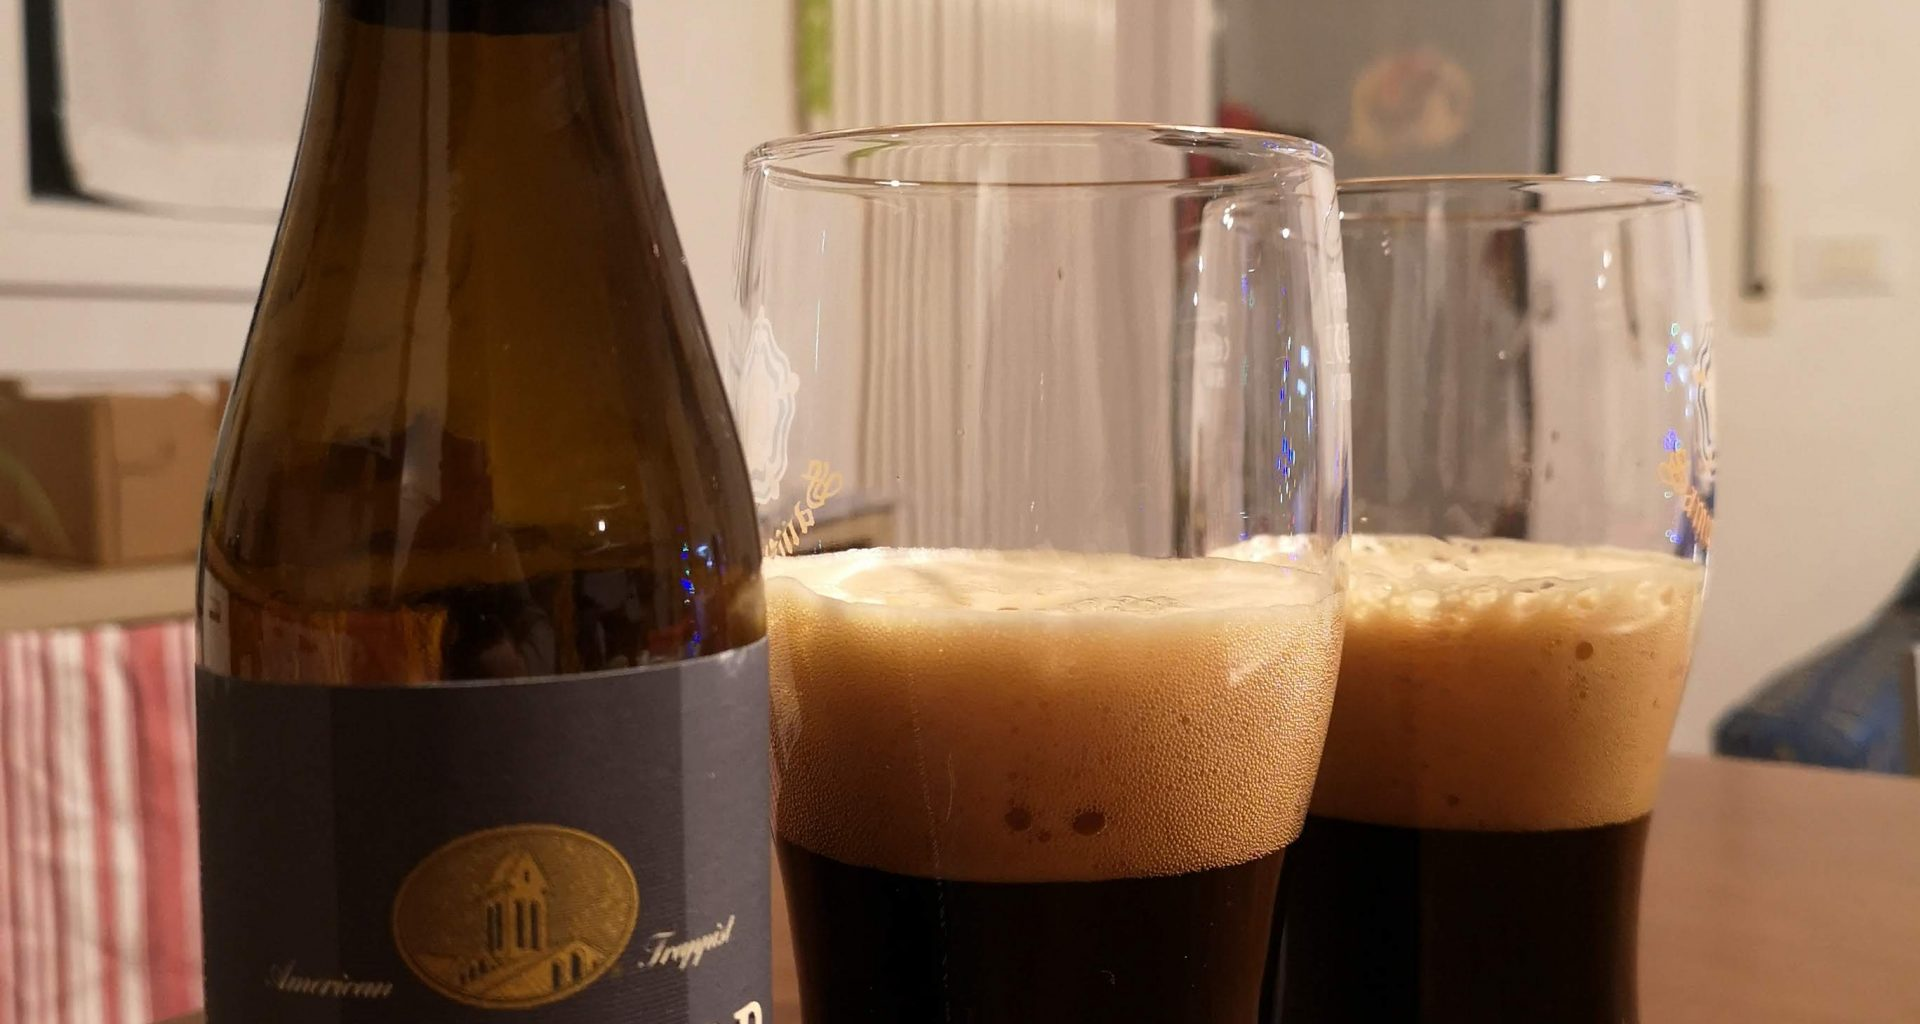 Spencer Brewery - Trappist Imperial Stout